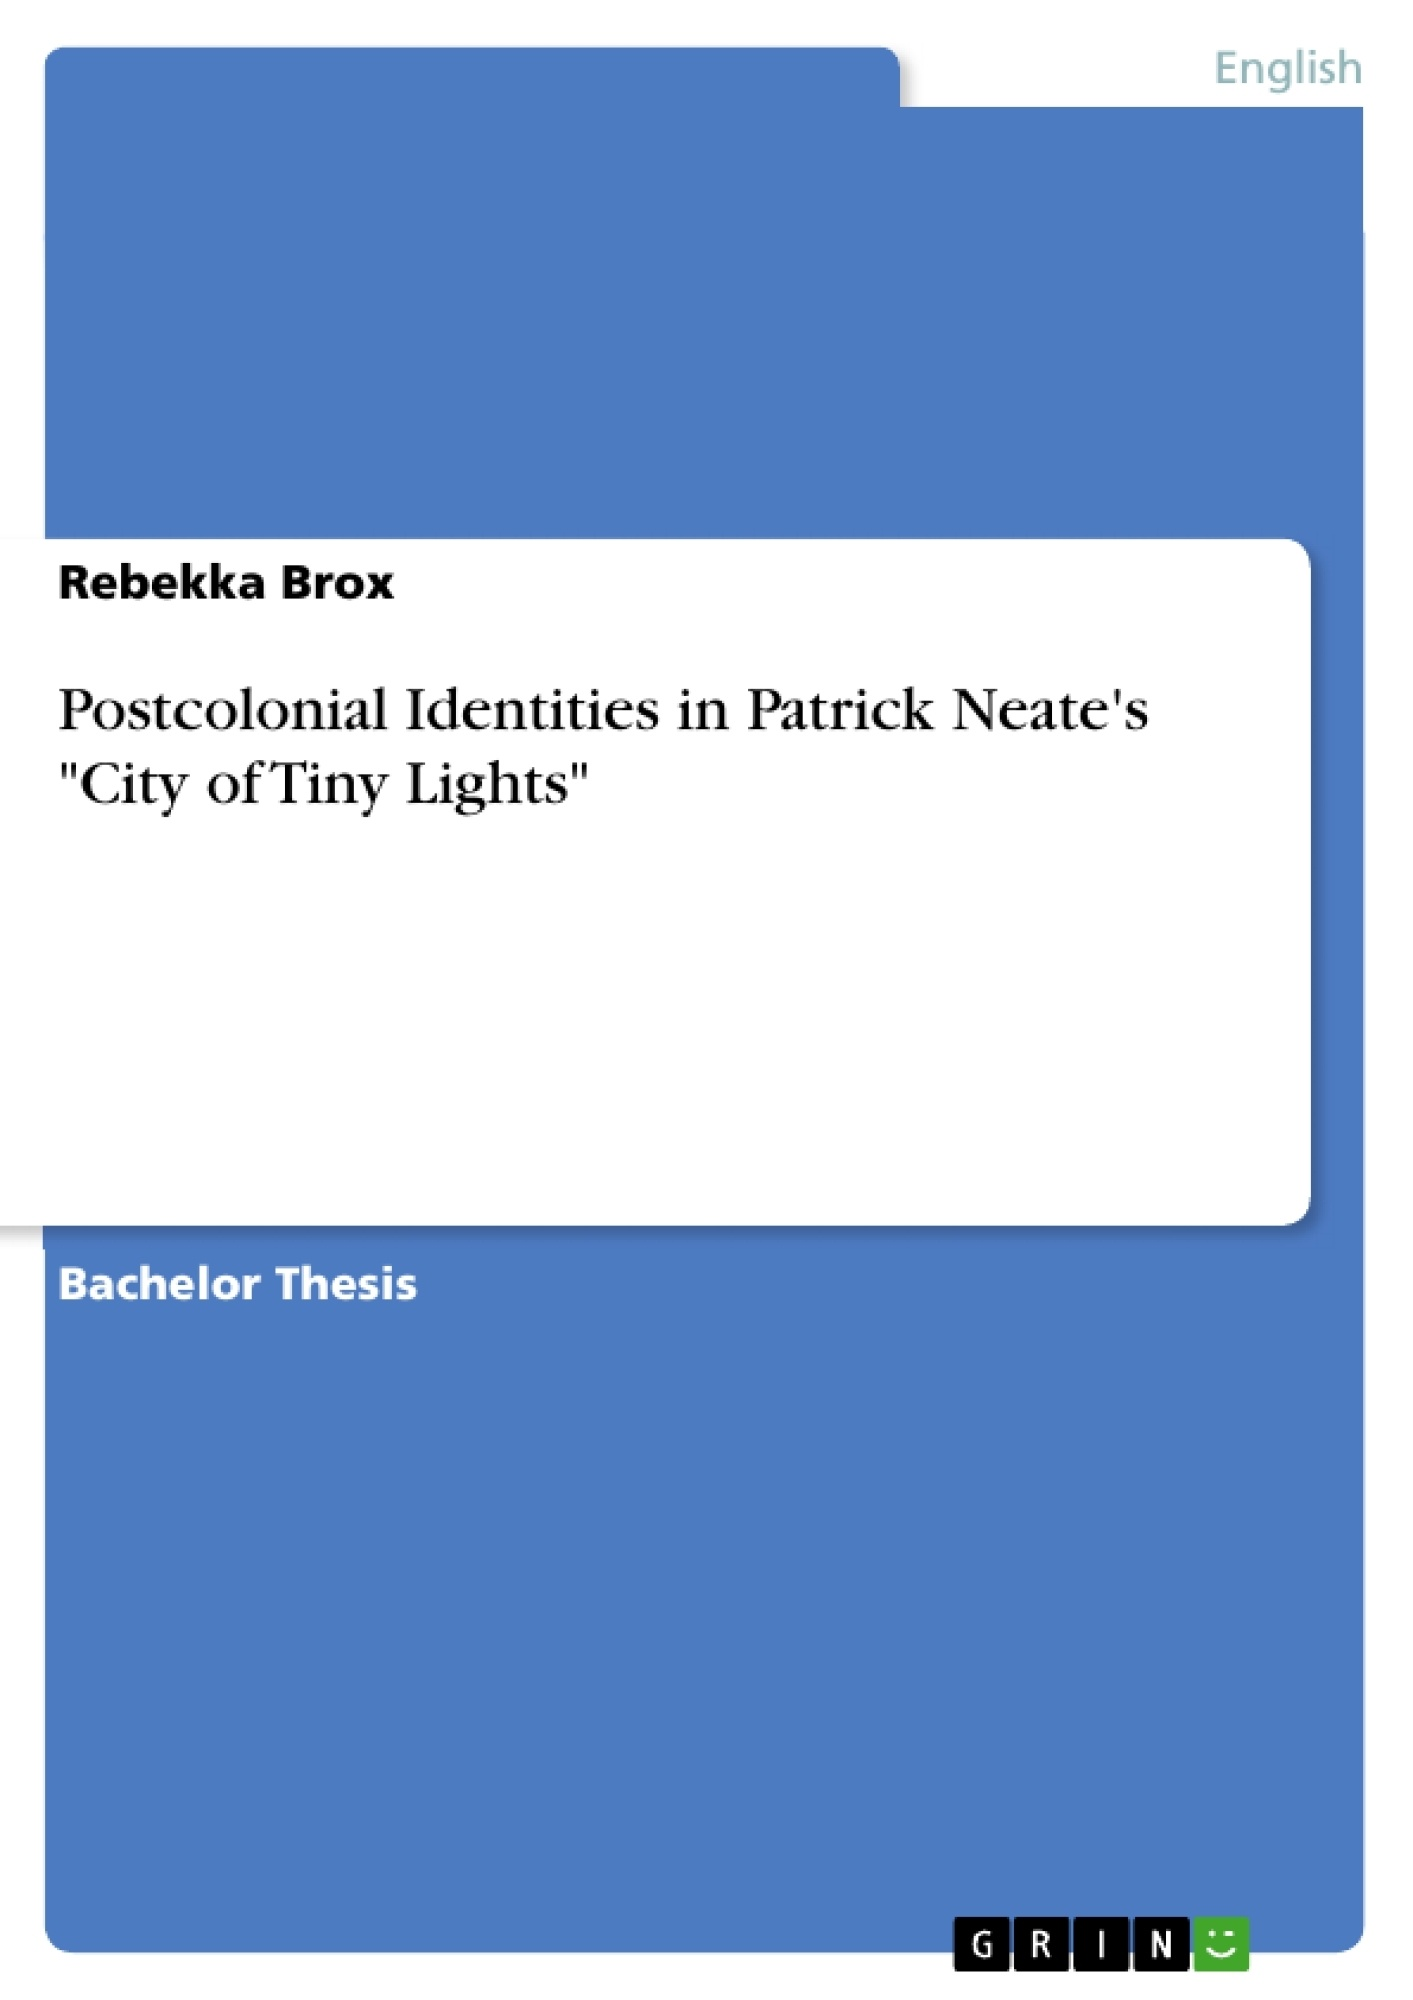 """Title: Postcolonial Identities in Patrick Neate's """"City of Tiny Lights"""""""